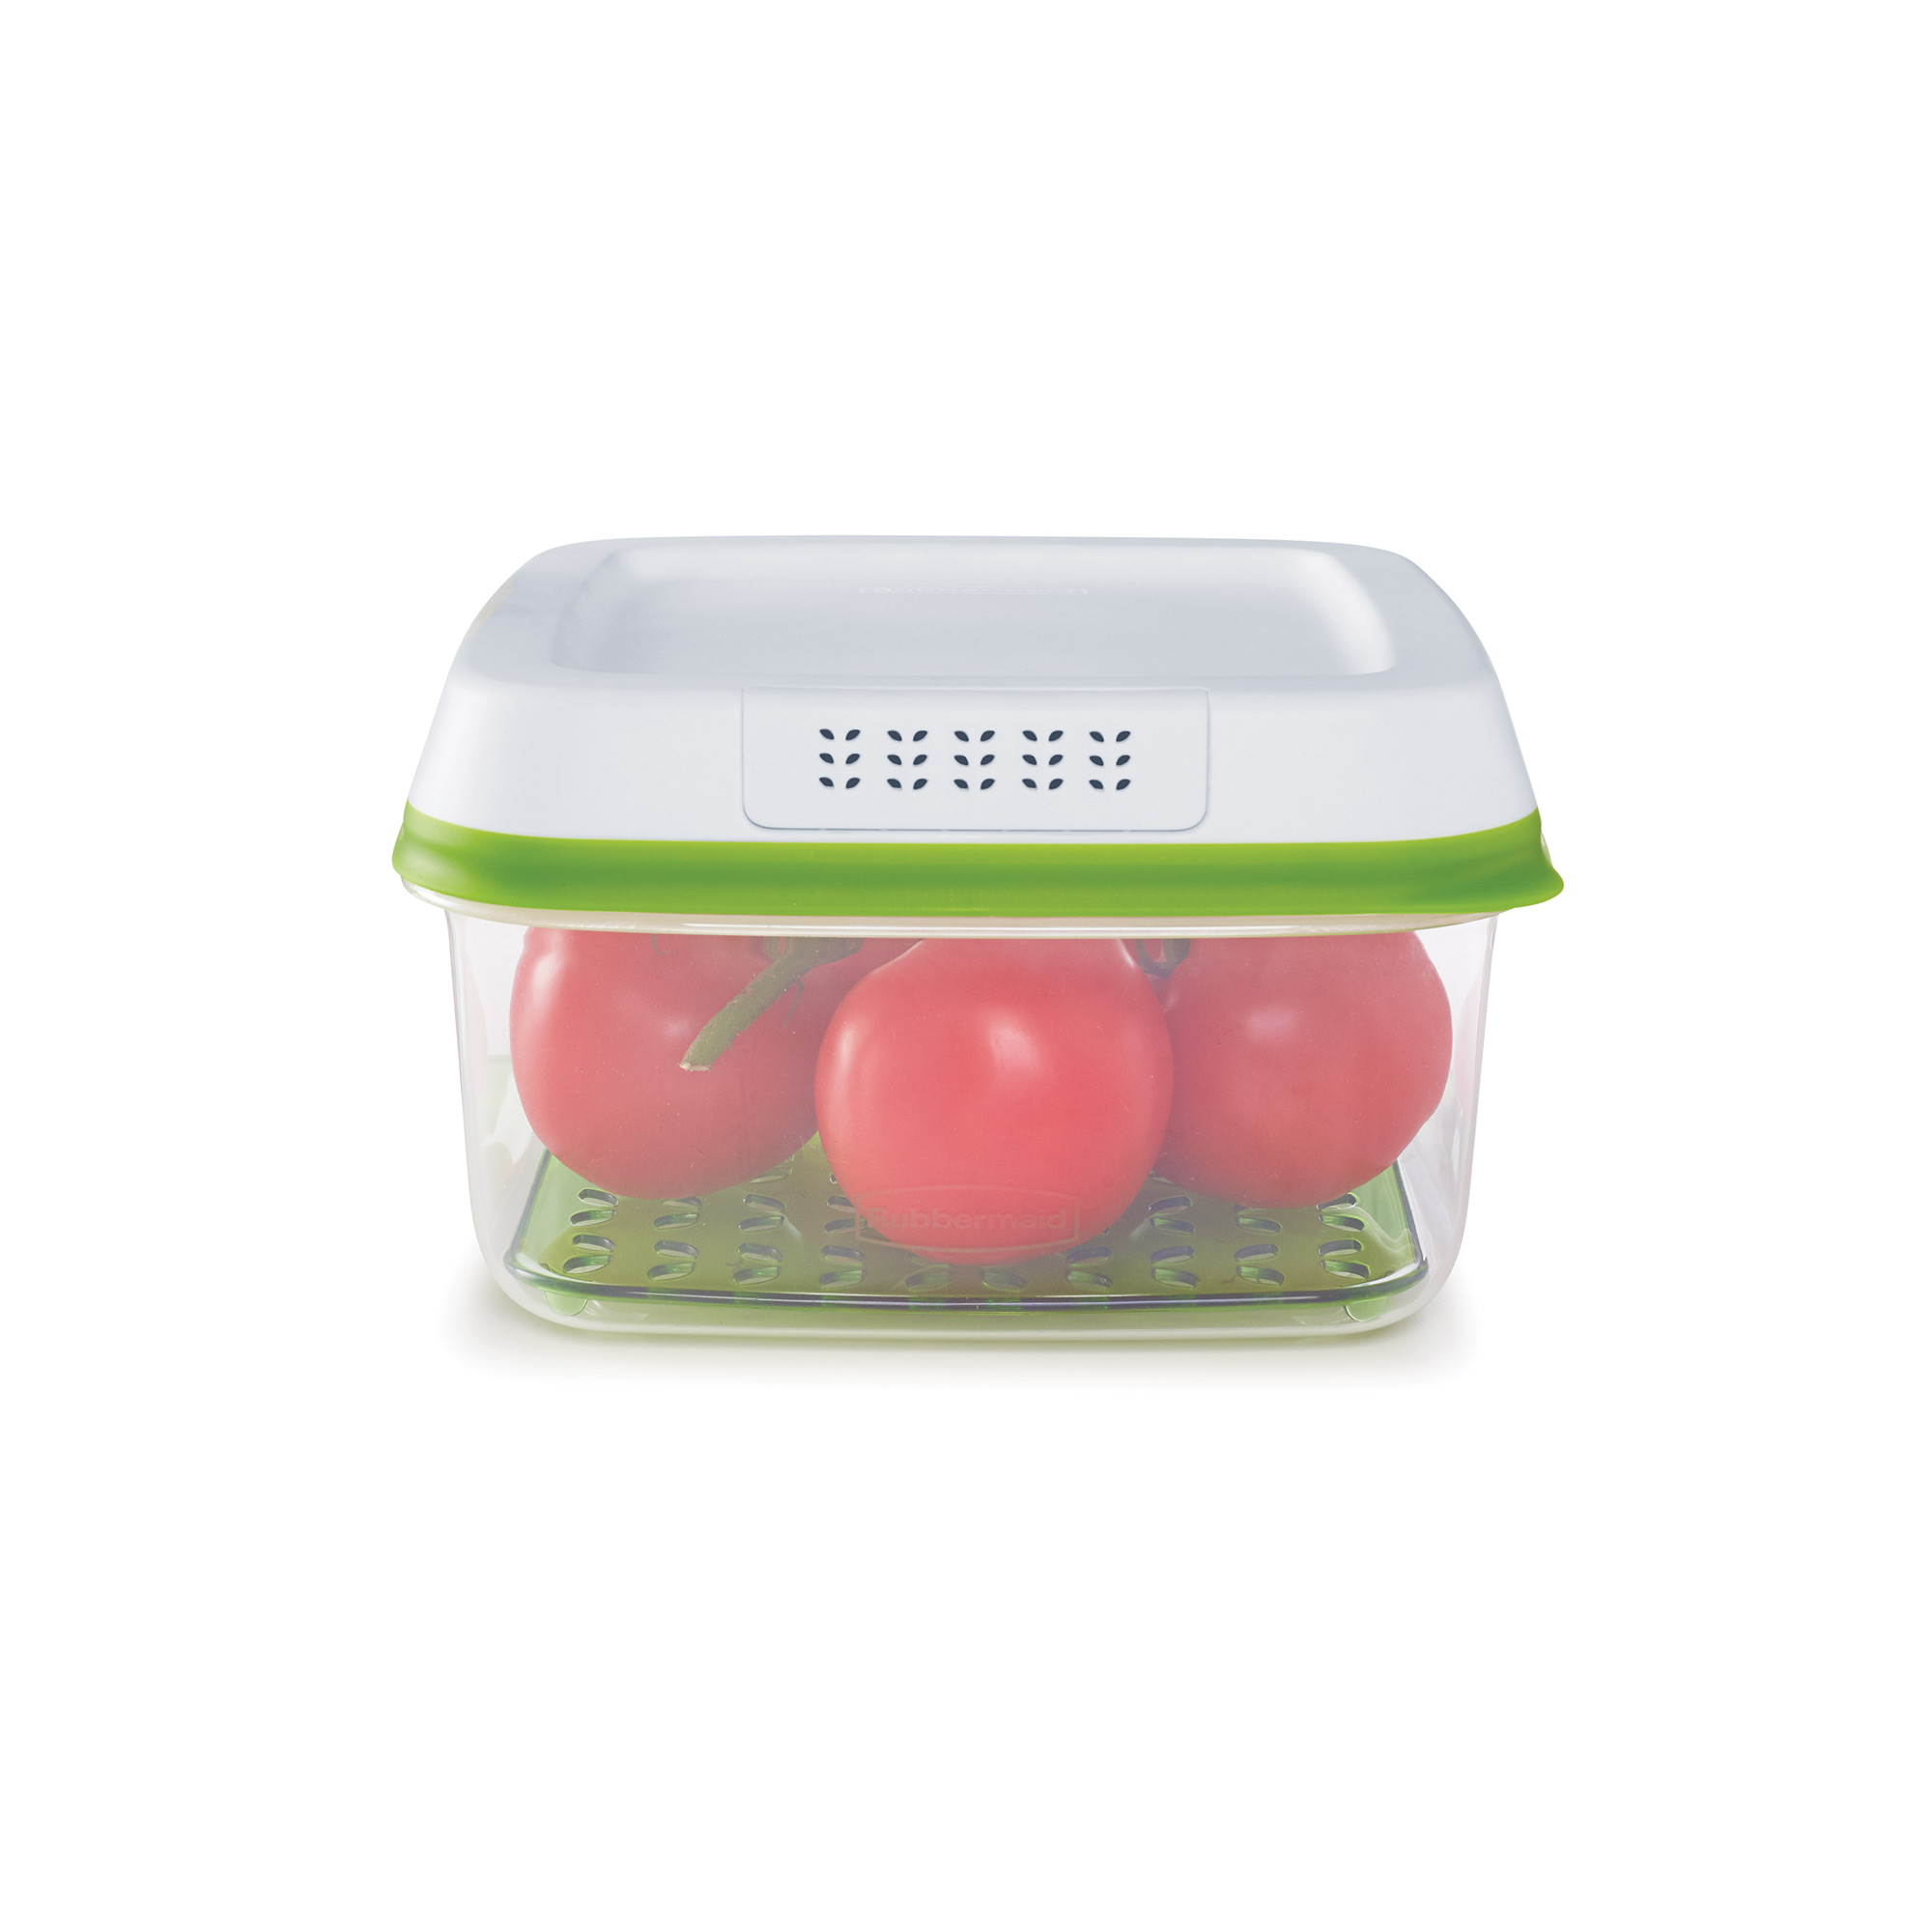 Rubbermaid FreshWorks Large Square Produce Saver, 11.1 Cup